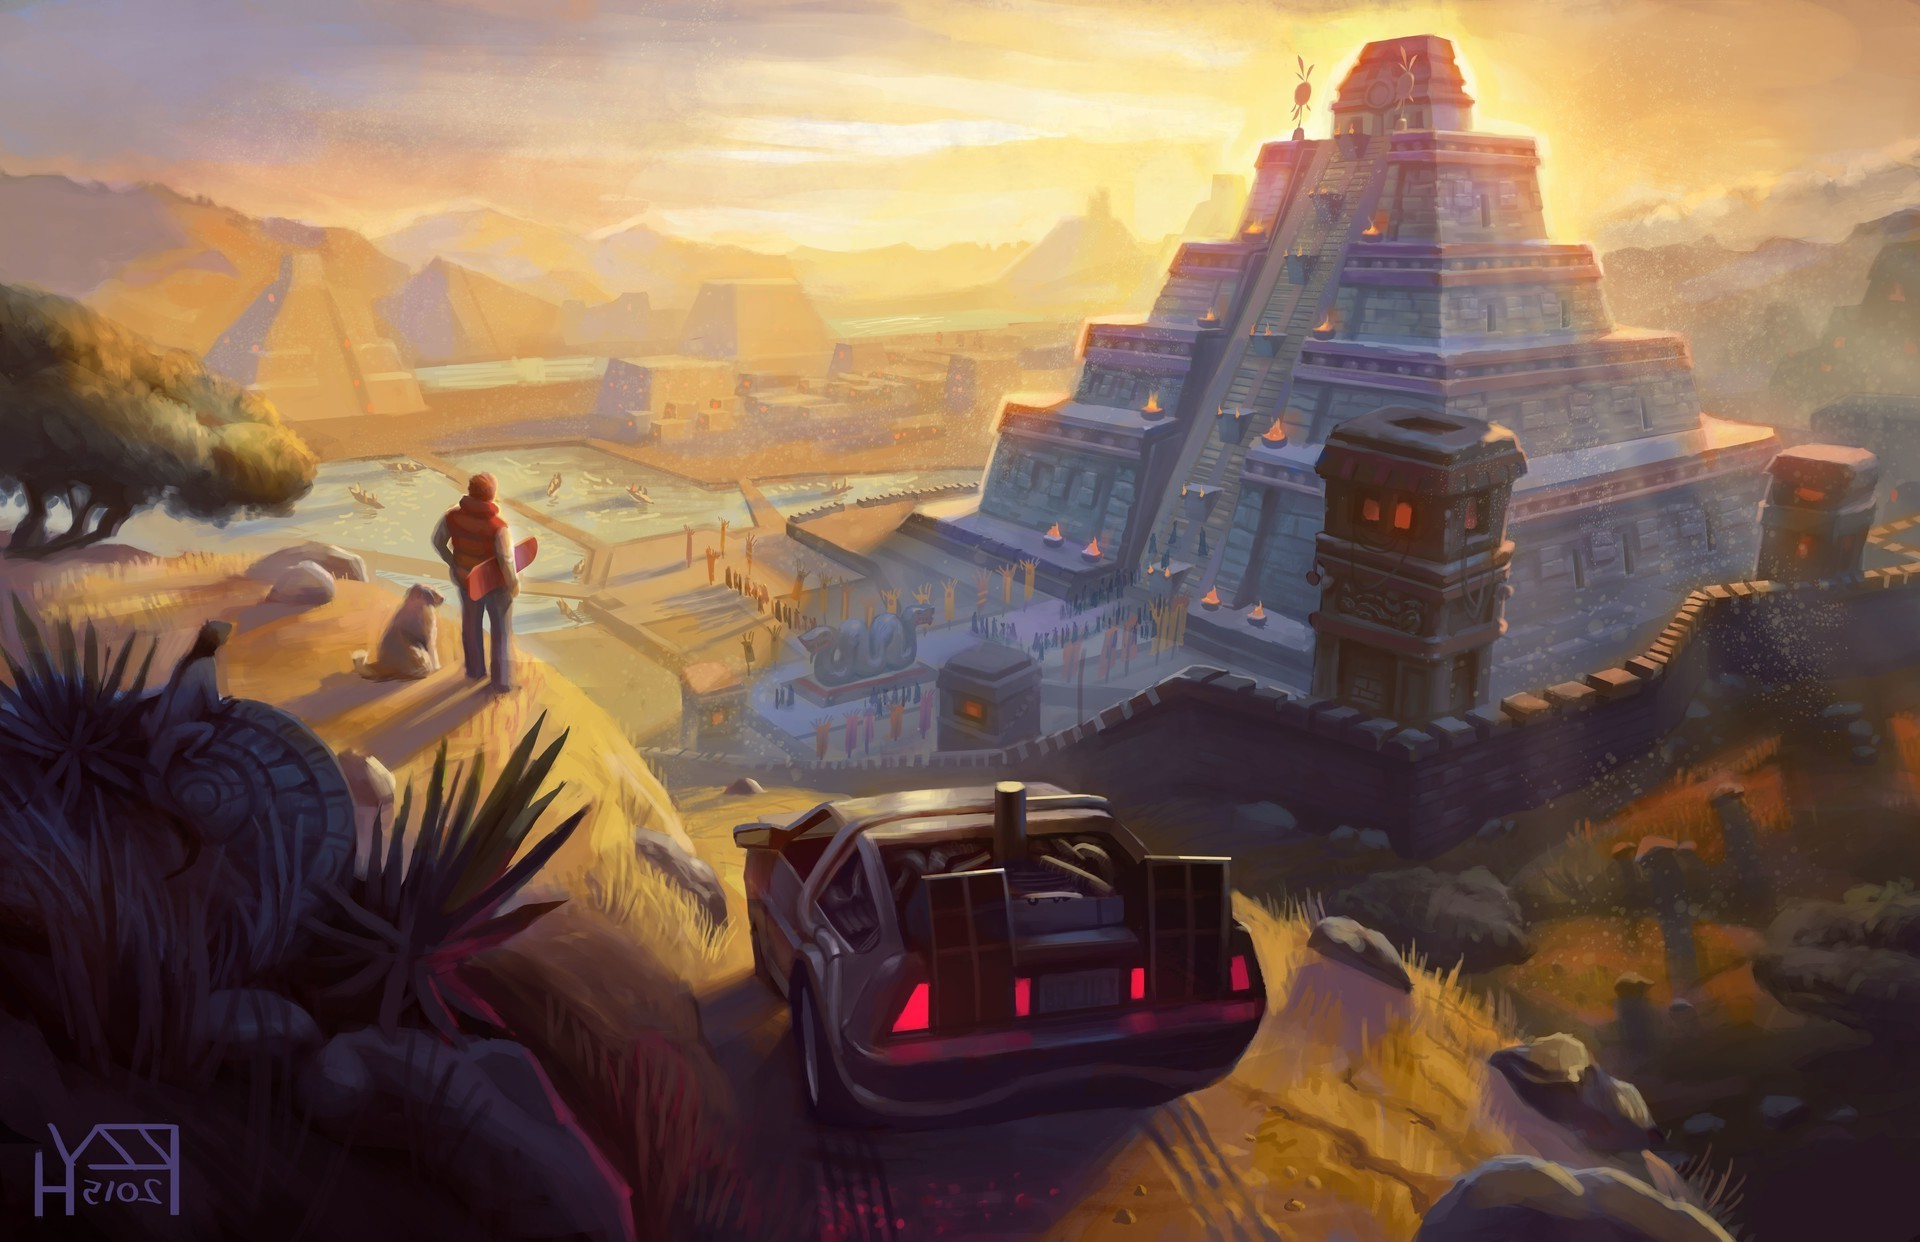 1920x1242 artwork, Fantasy Art, Back To The Future, DeLorean, Pyramid, Movies, Mayan,  Aztec Wallpapers HD / Desktop and Mobile Backgrounds